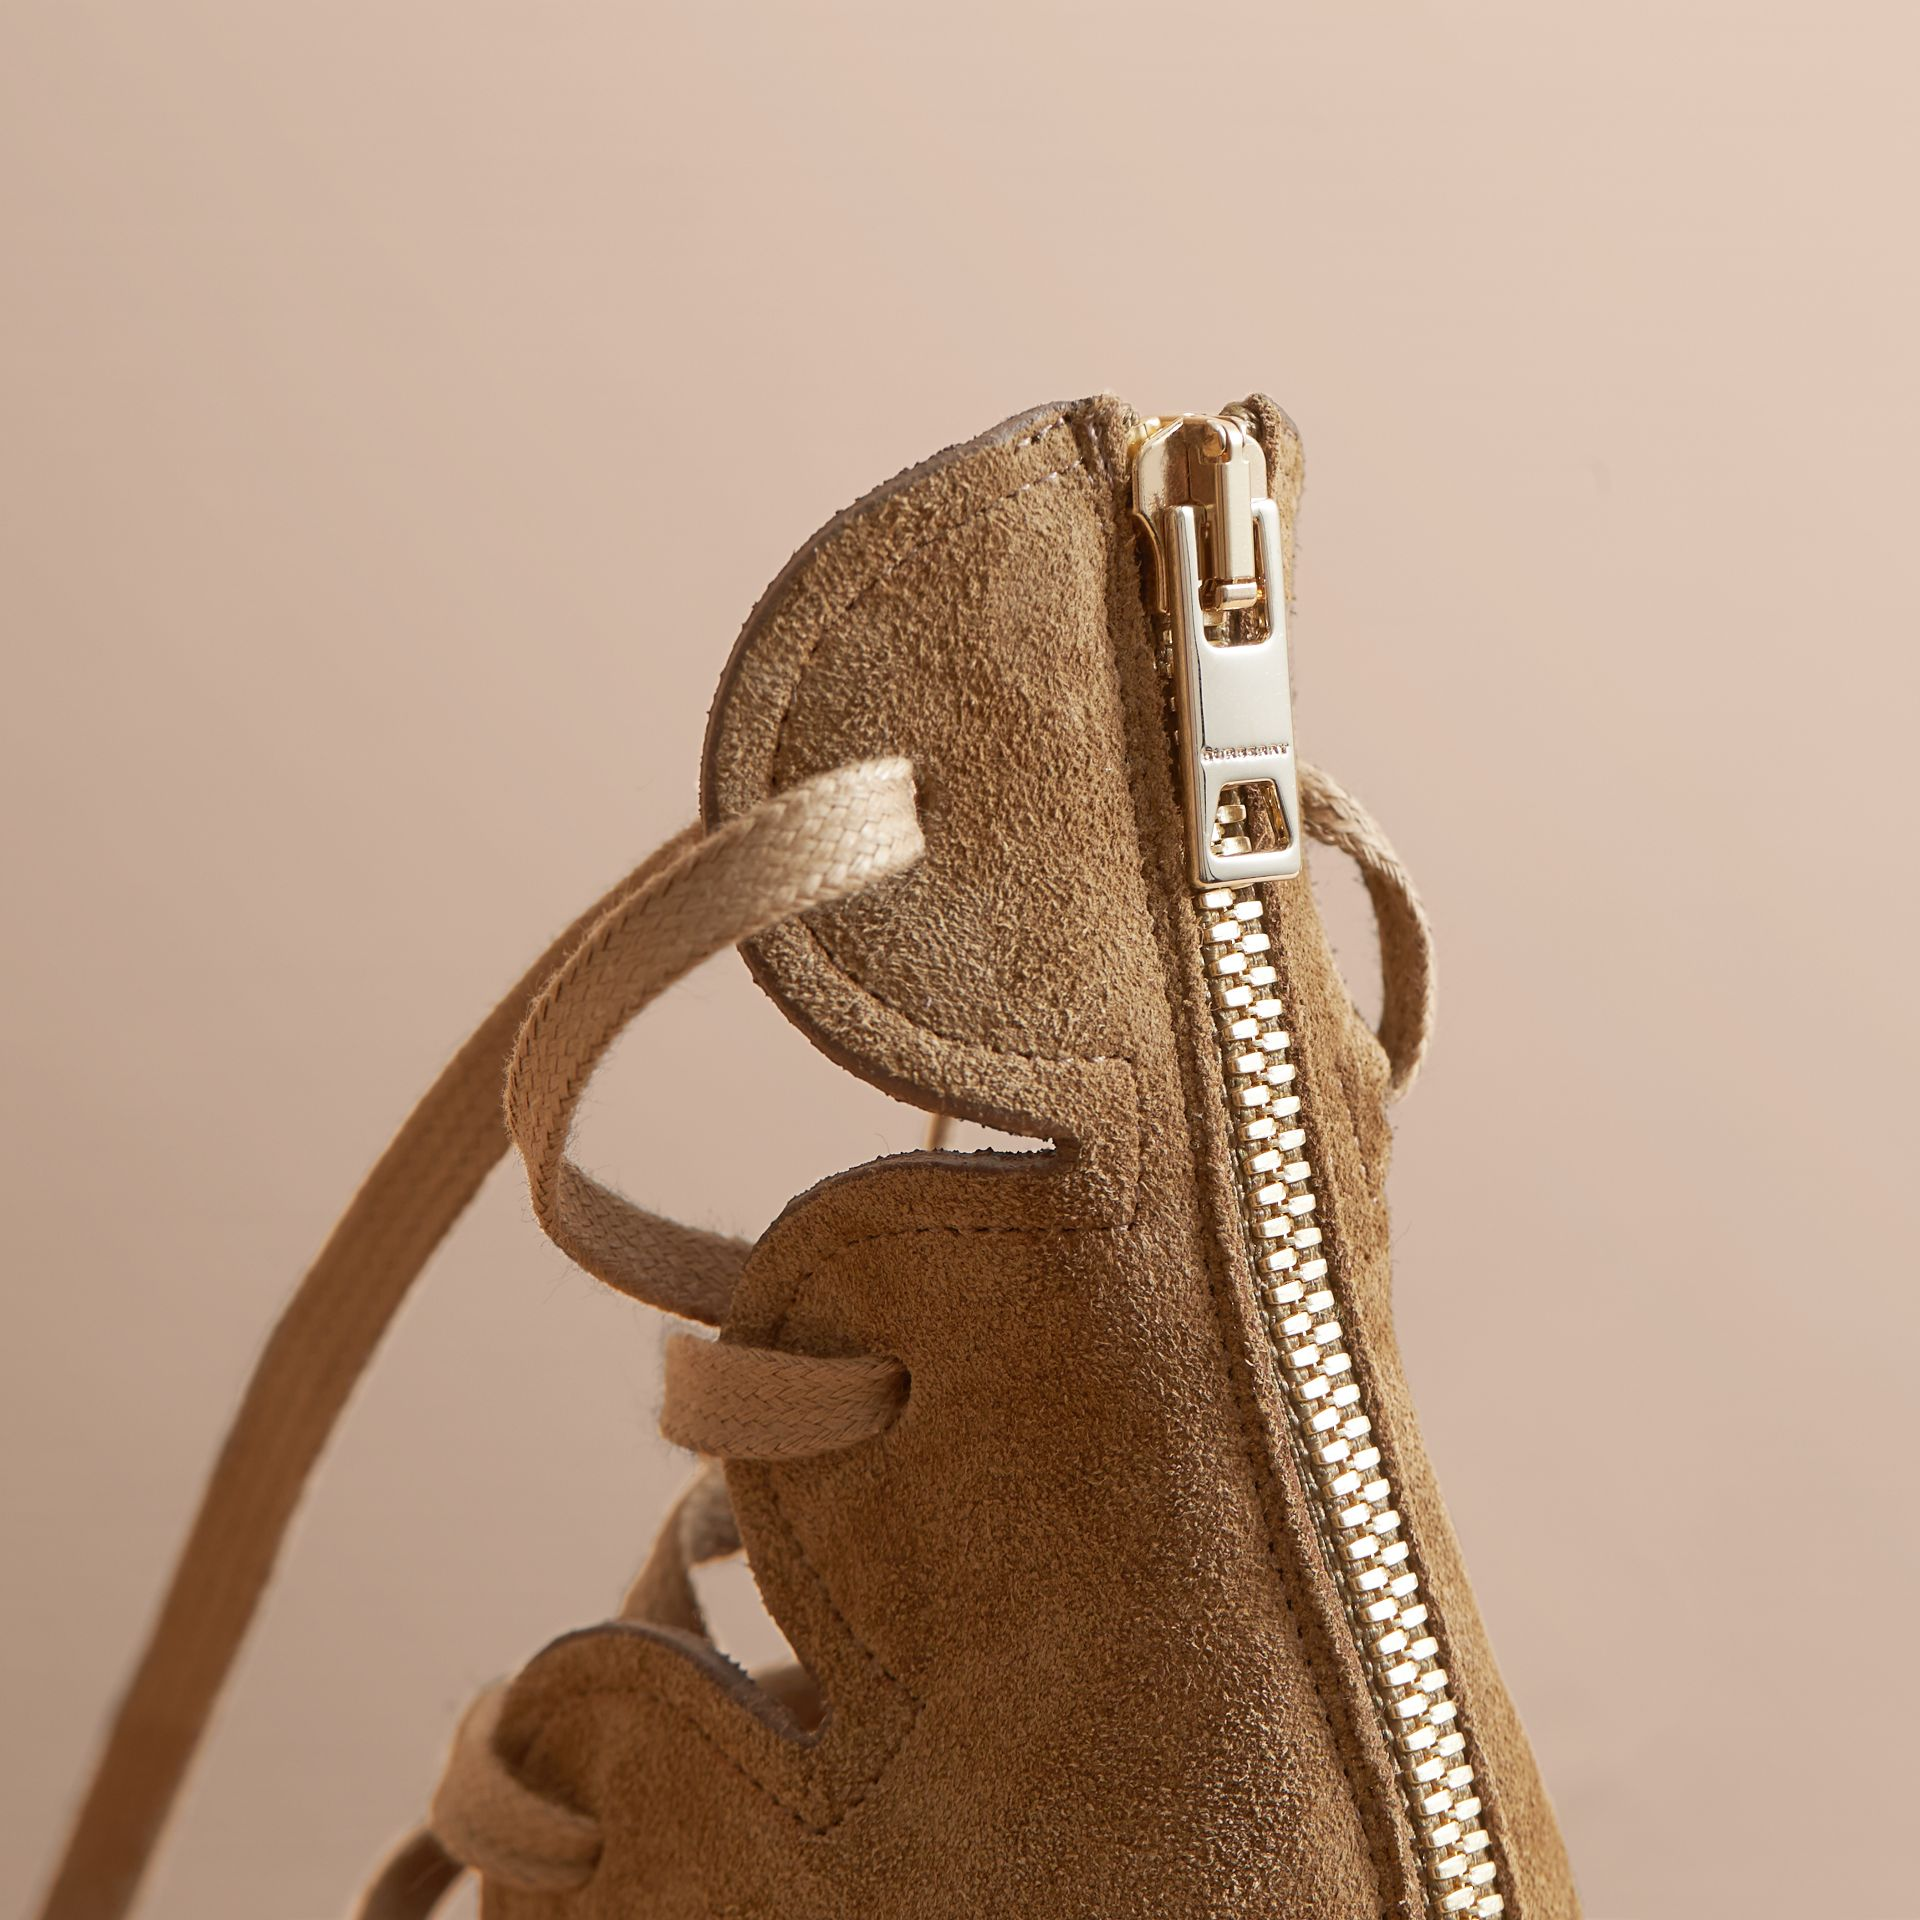 Scalloped Suede Lace-up Sandals in Sandstone - Women | Burberry - gallery image 2